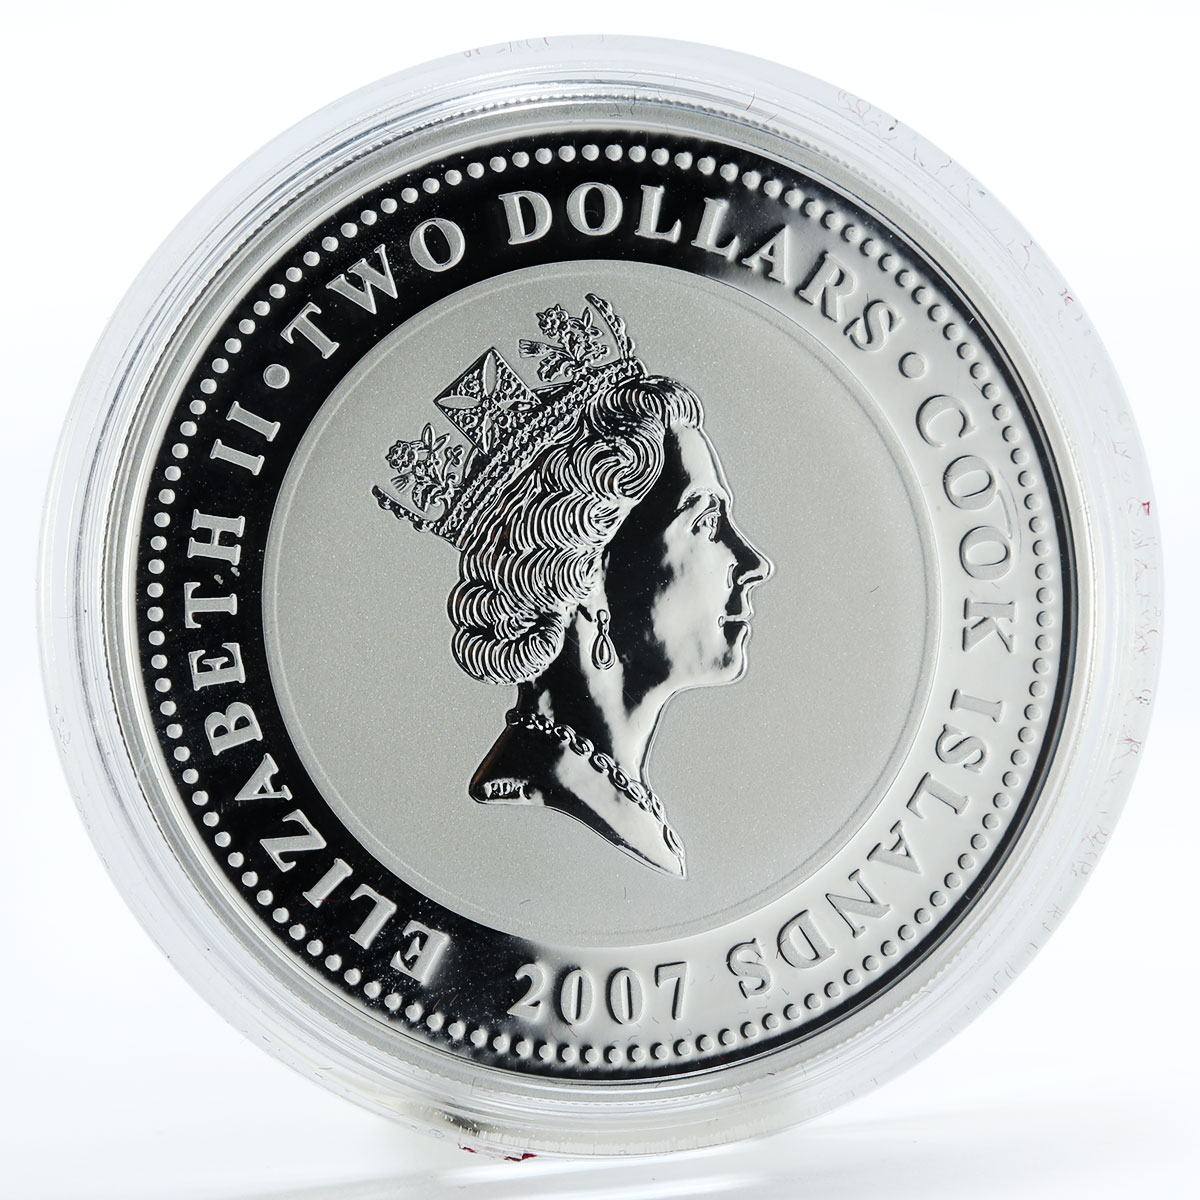 Cook Islands 2 dollars Sherlock Holmes The Sign of Four silver coin 2007